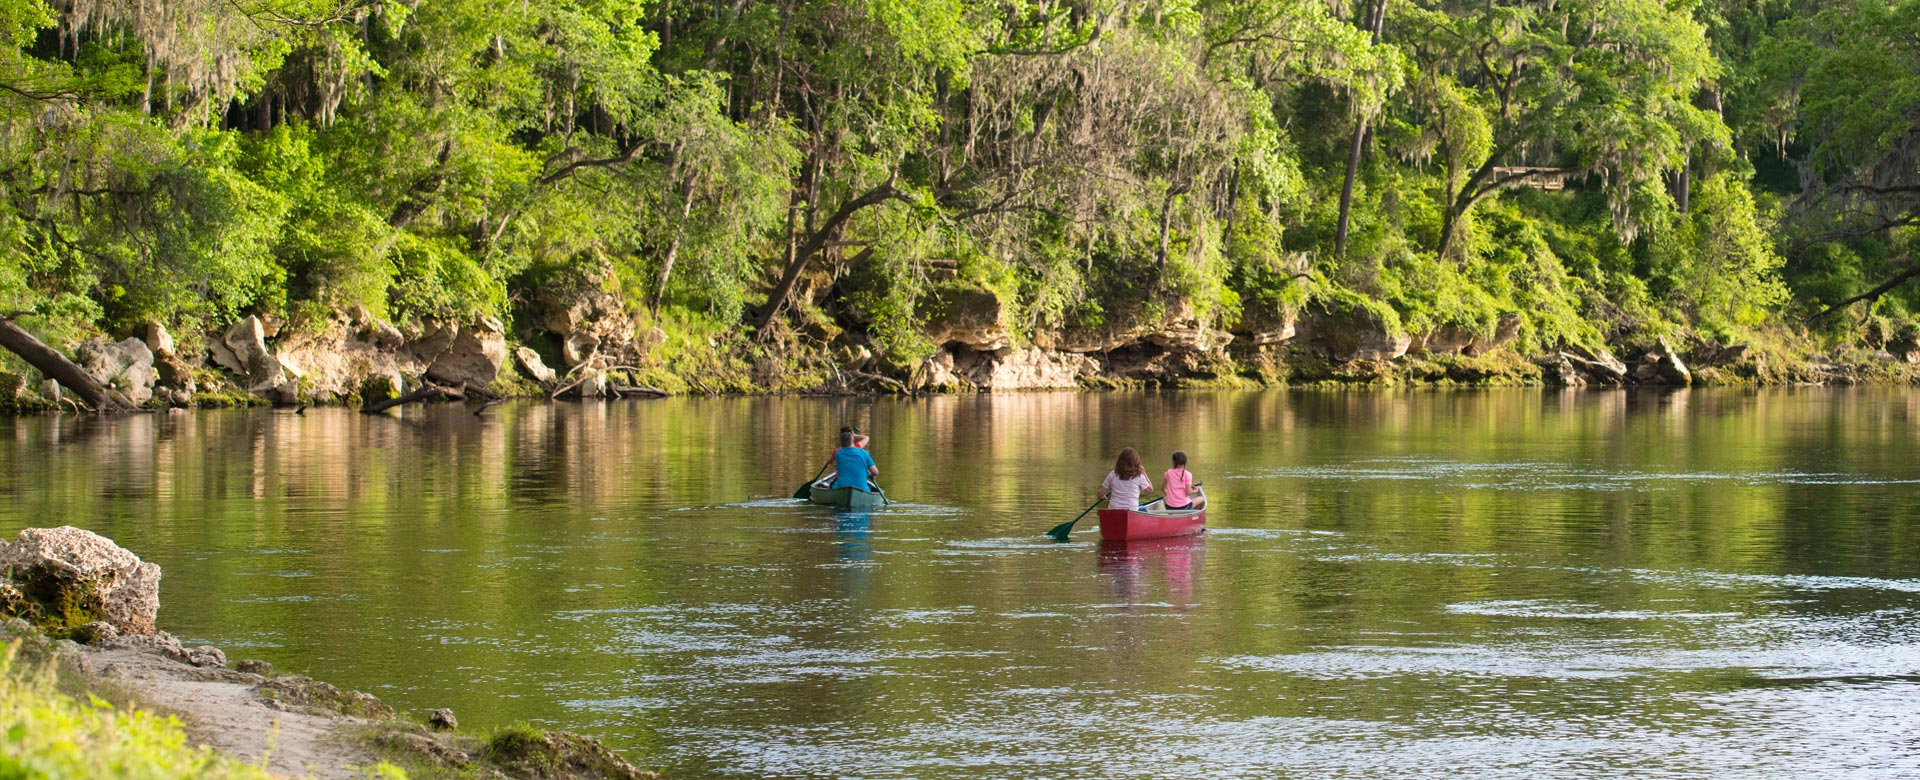 Two canoes with two people in each in the middle of the Suwannee River surrounded by trees